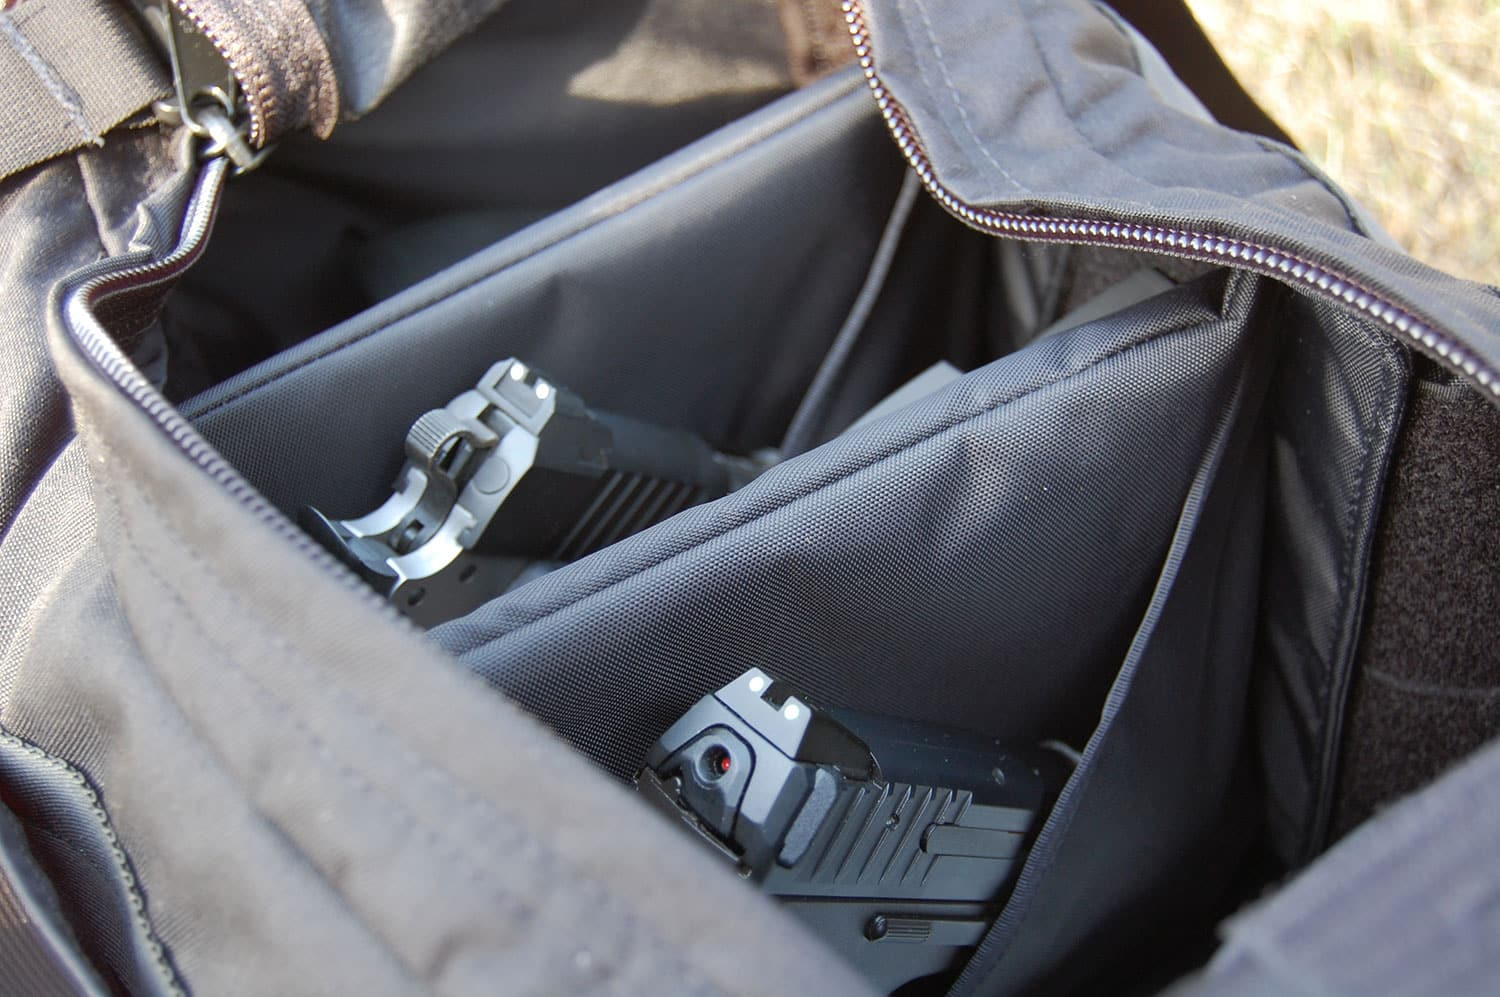 Pistol Range Bag in two pistol configuration